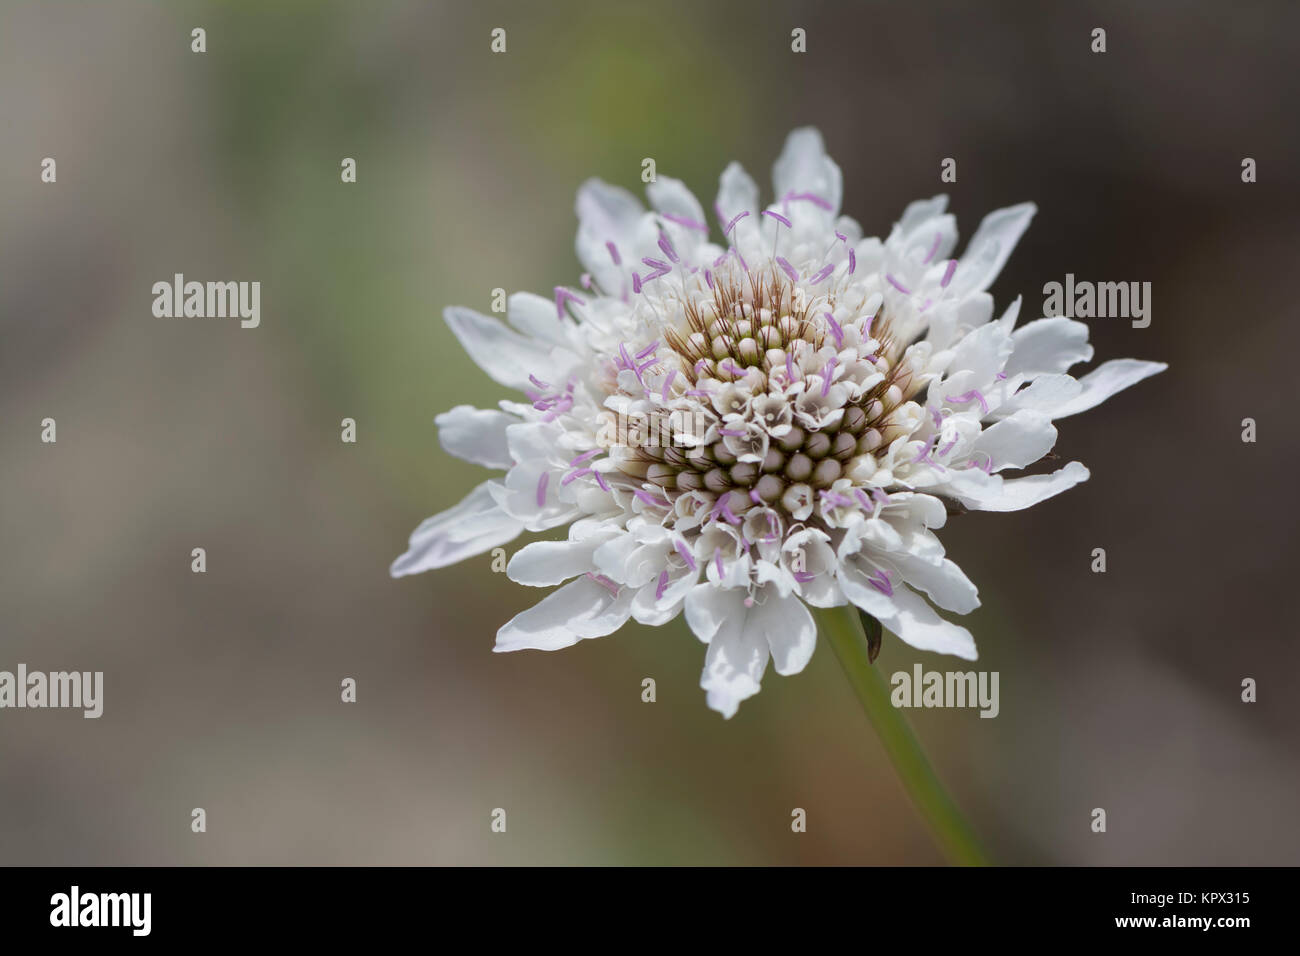 White Scabiosa Pincushion Flower Flower Head With Blurred Natural